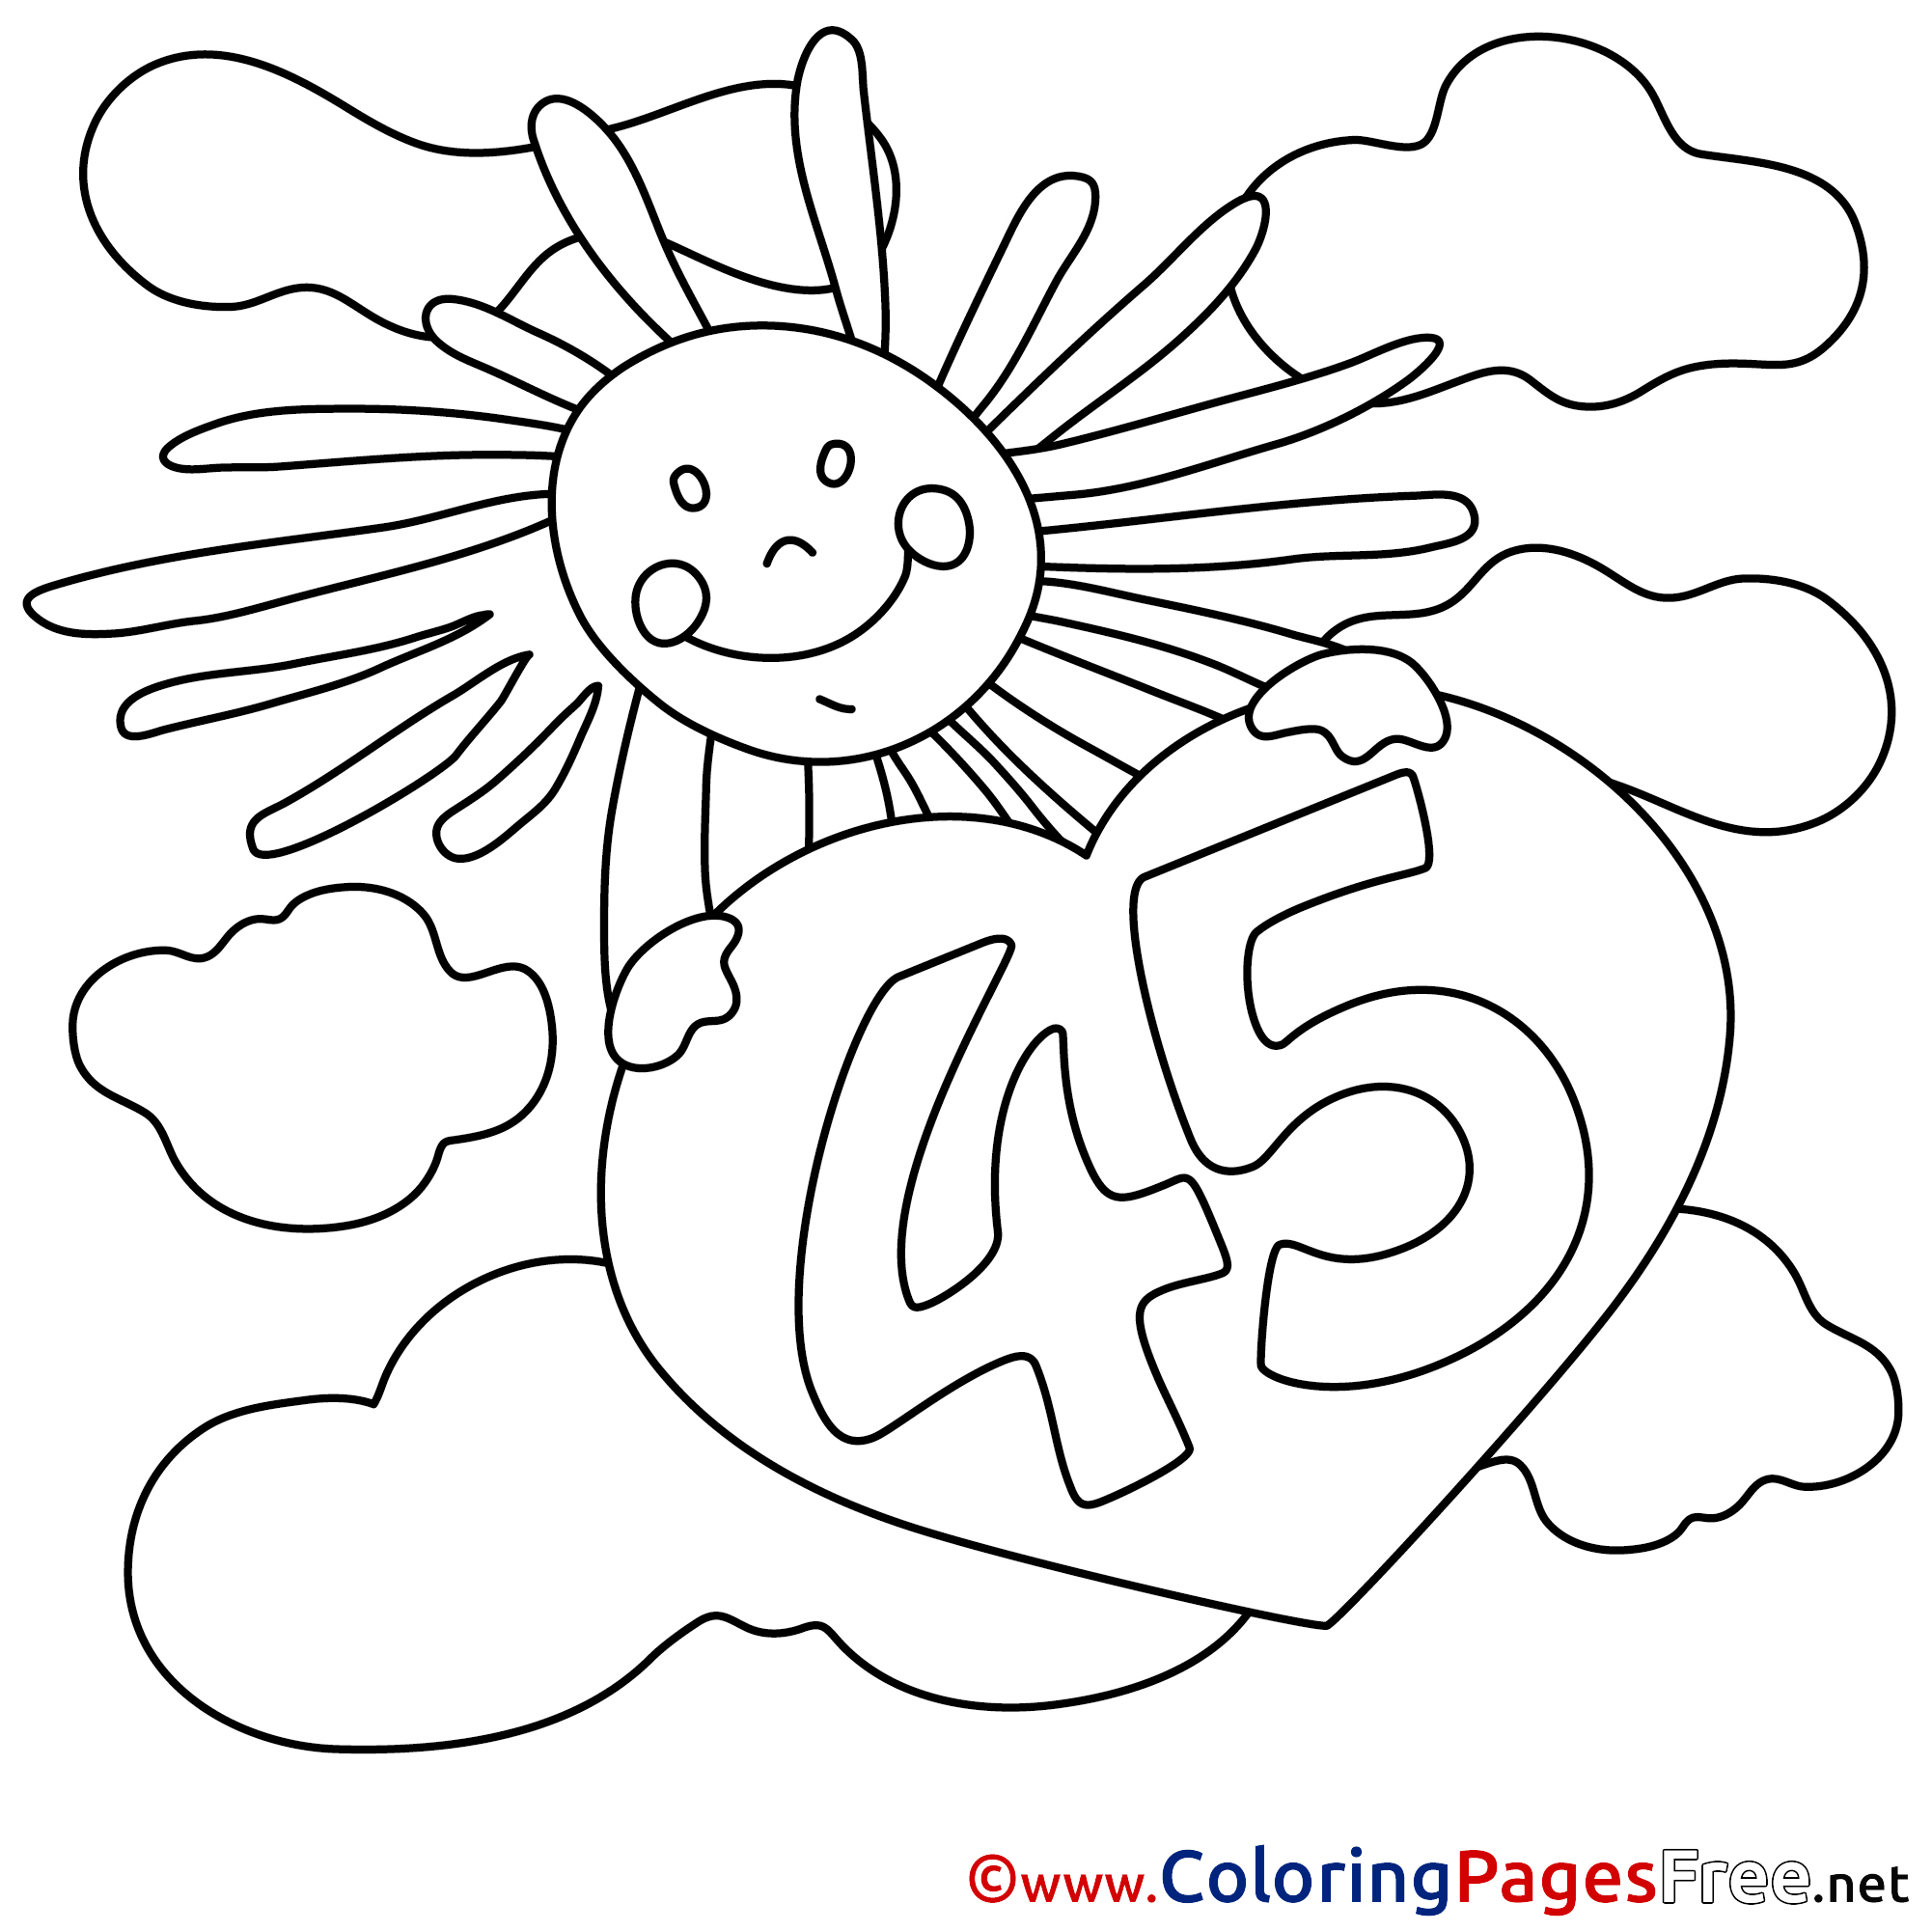 Sun And Moon Coloring Pages - GetColoringPages.com | 2001x2002